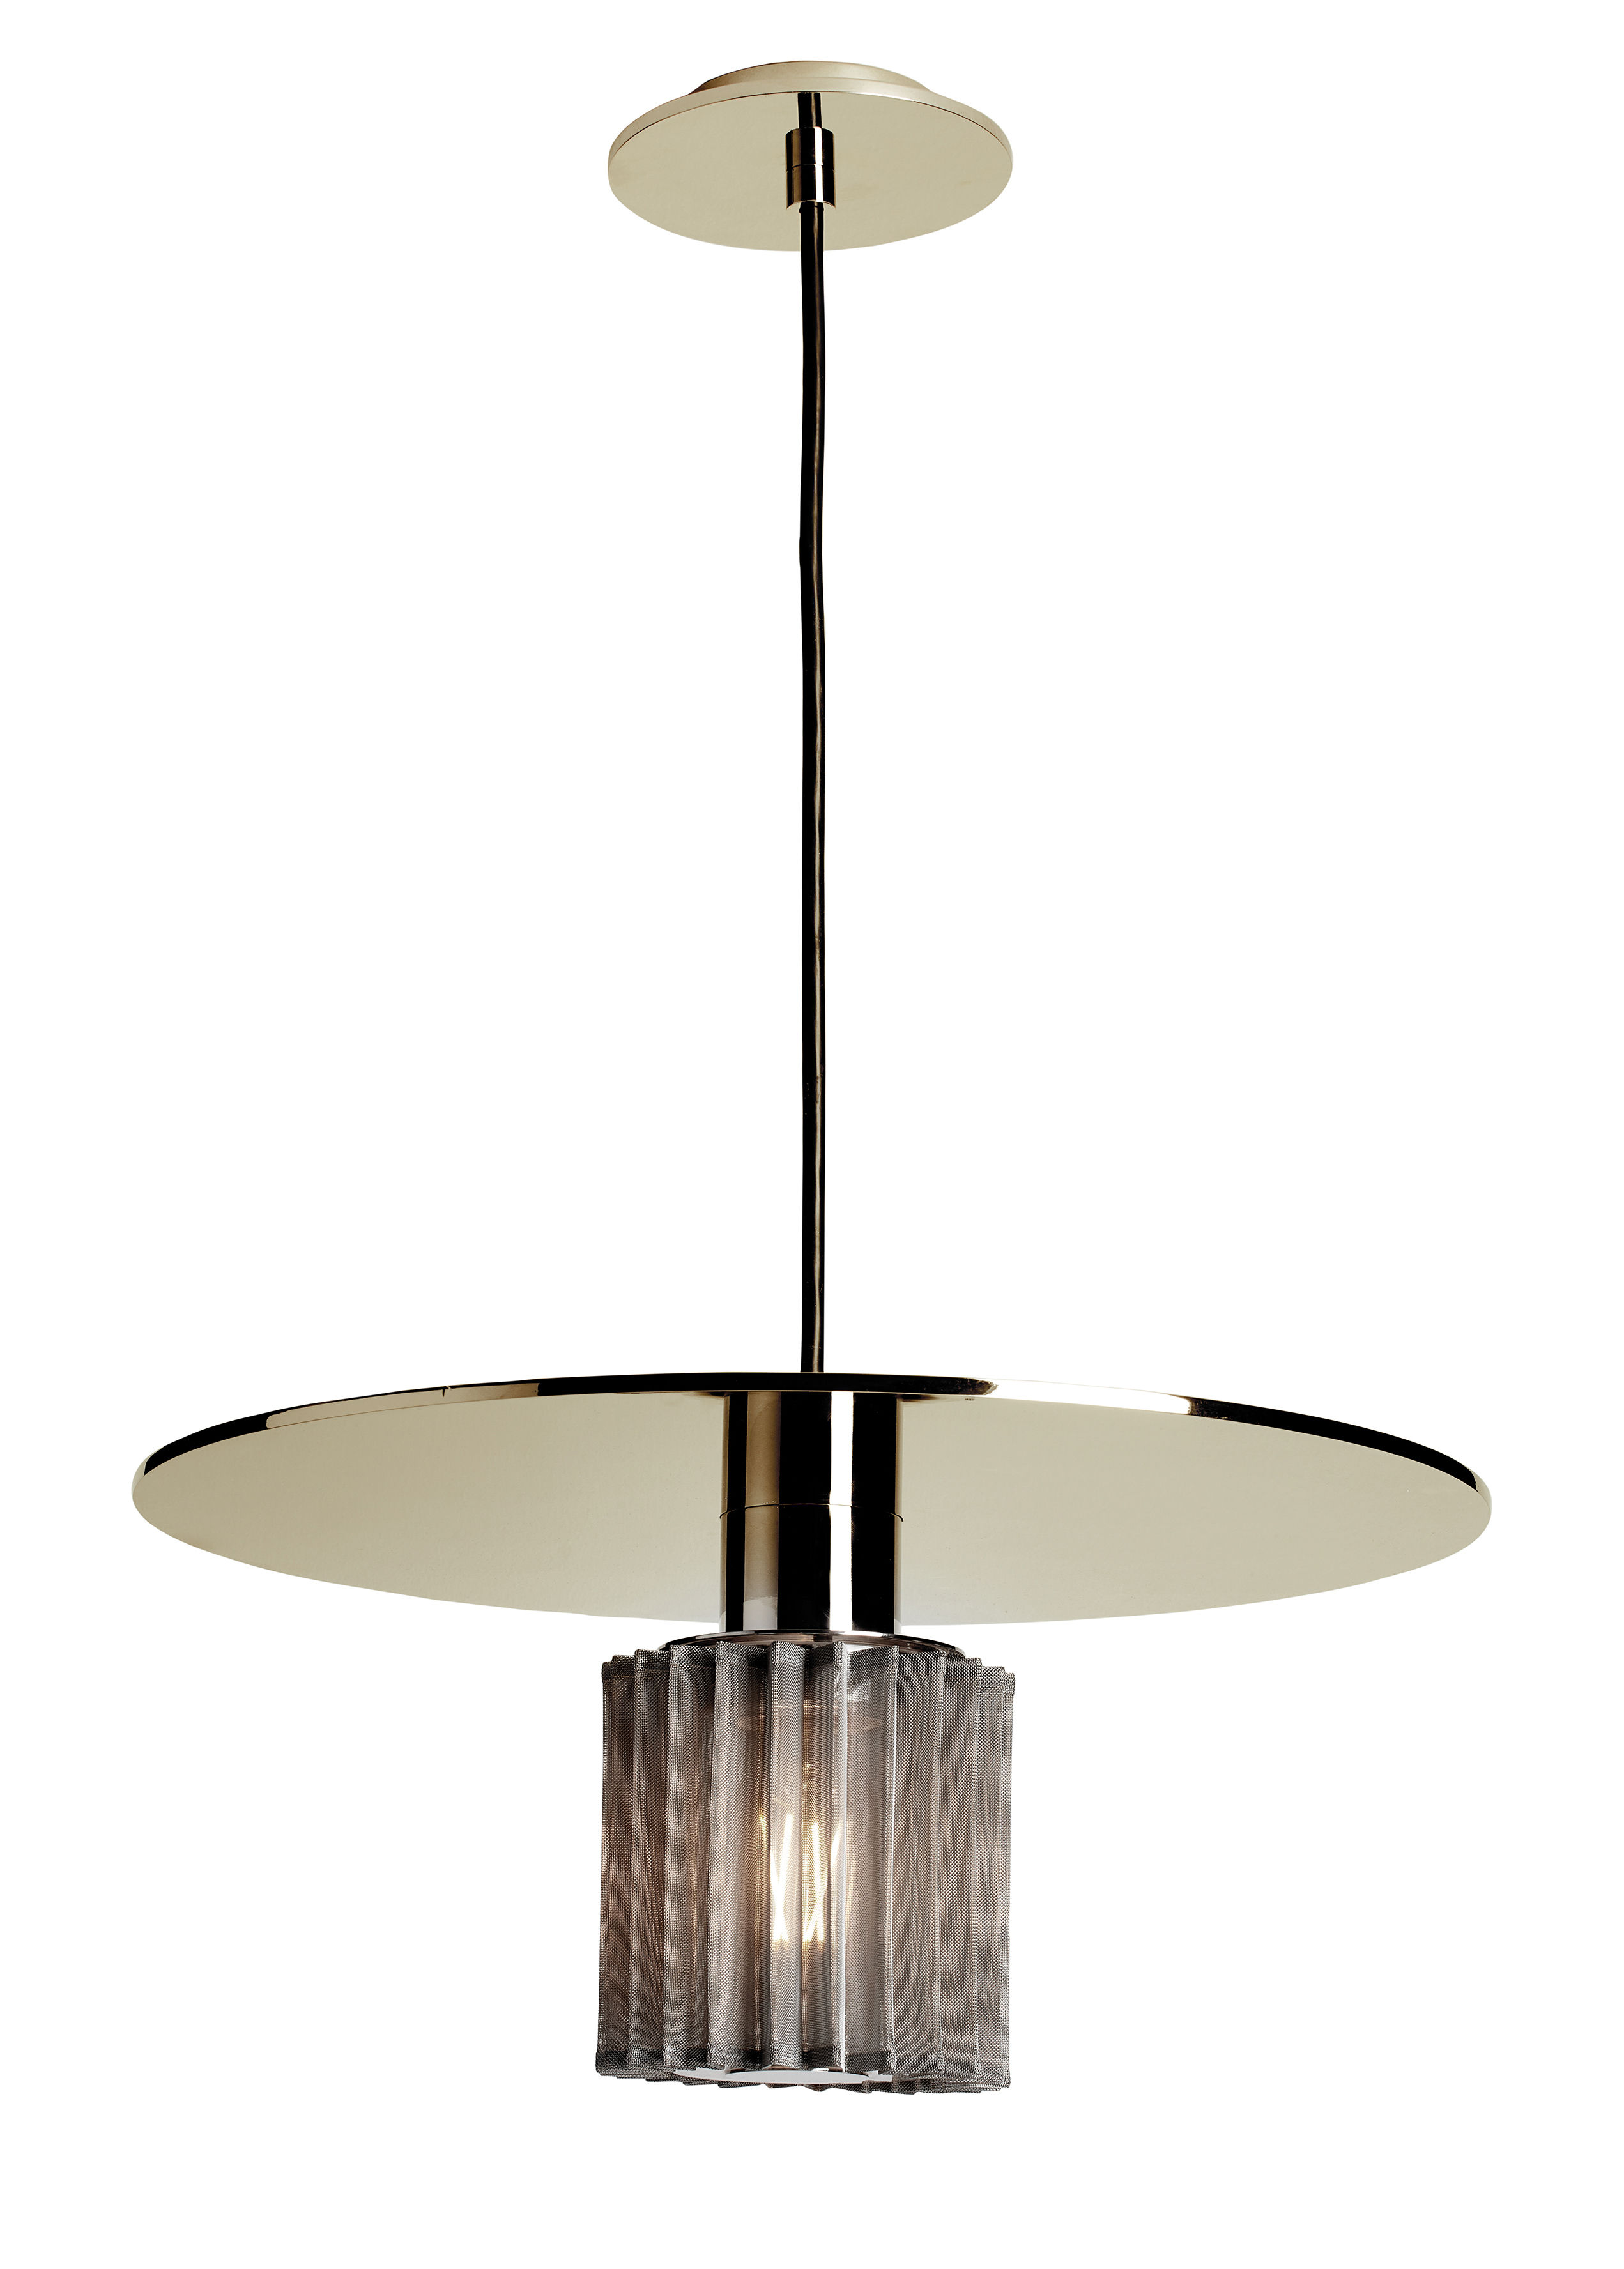 Lighting - Pendant Lighting - In the sun Large Pendant - / Ø 38 cm by DCW éditions - Gold / Silver mesh - Aluminium, Glass, Steel